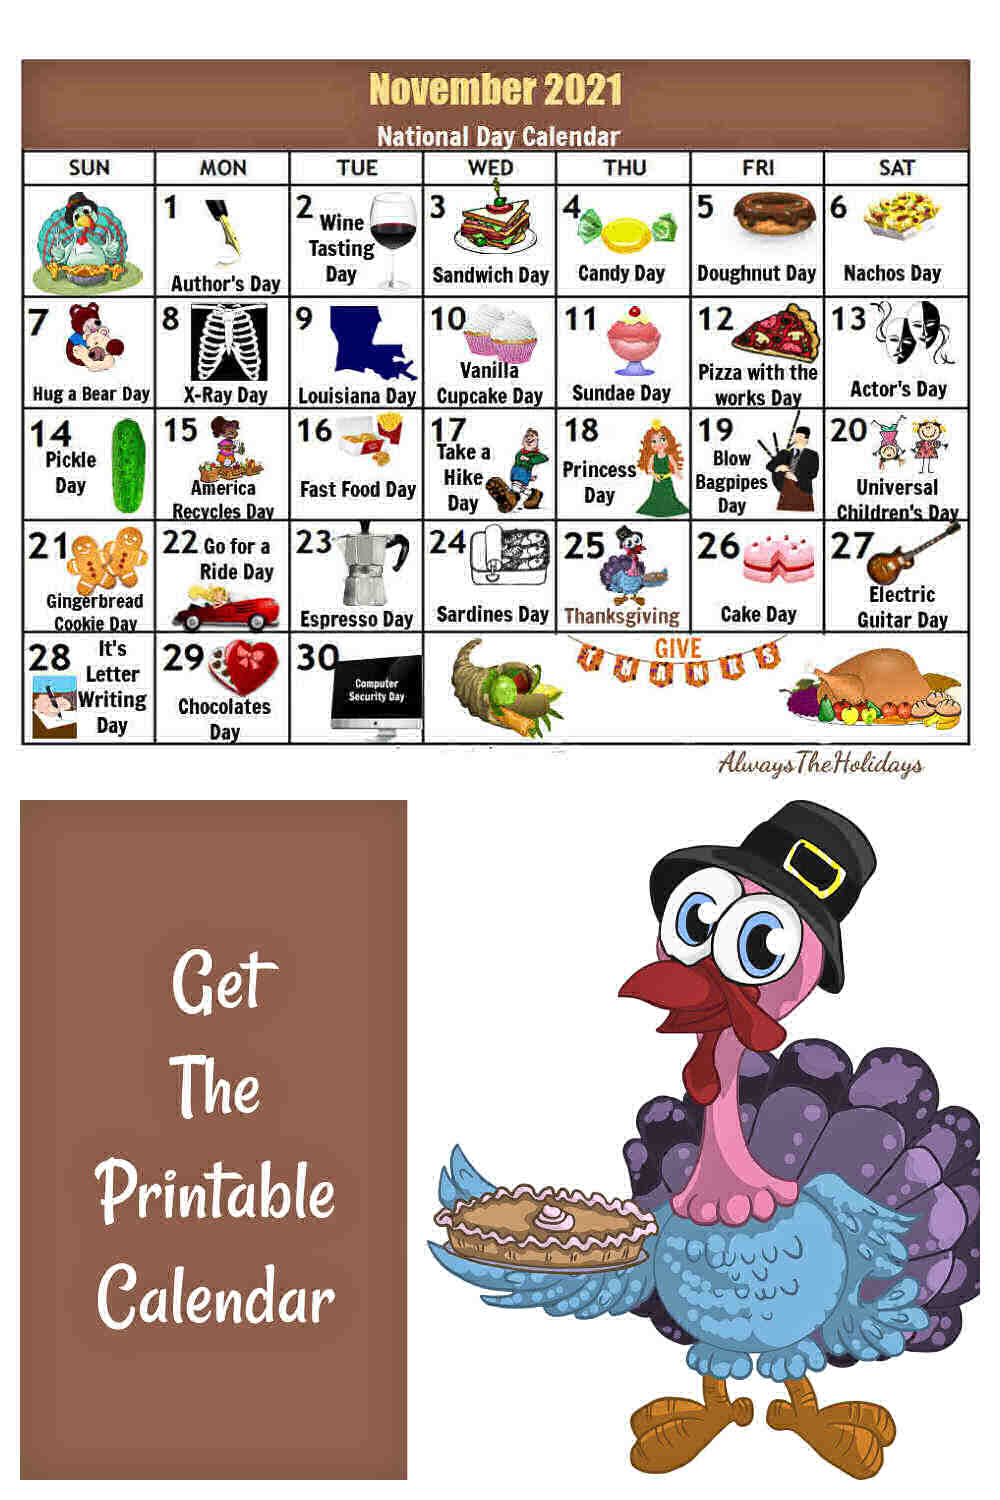 Calendar with icons and turkey with pie and words Get the printable calendar.